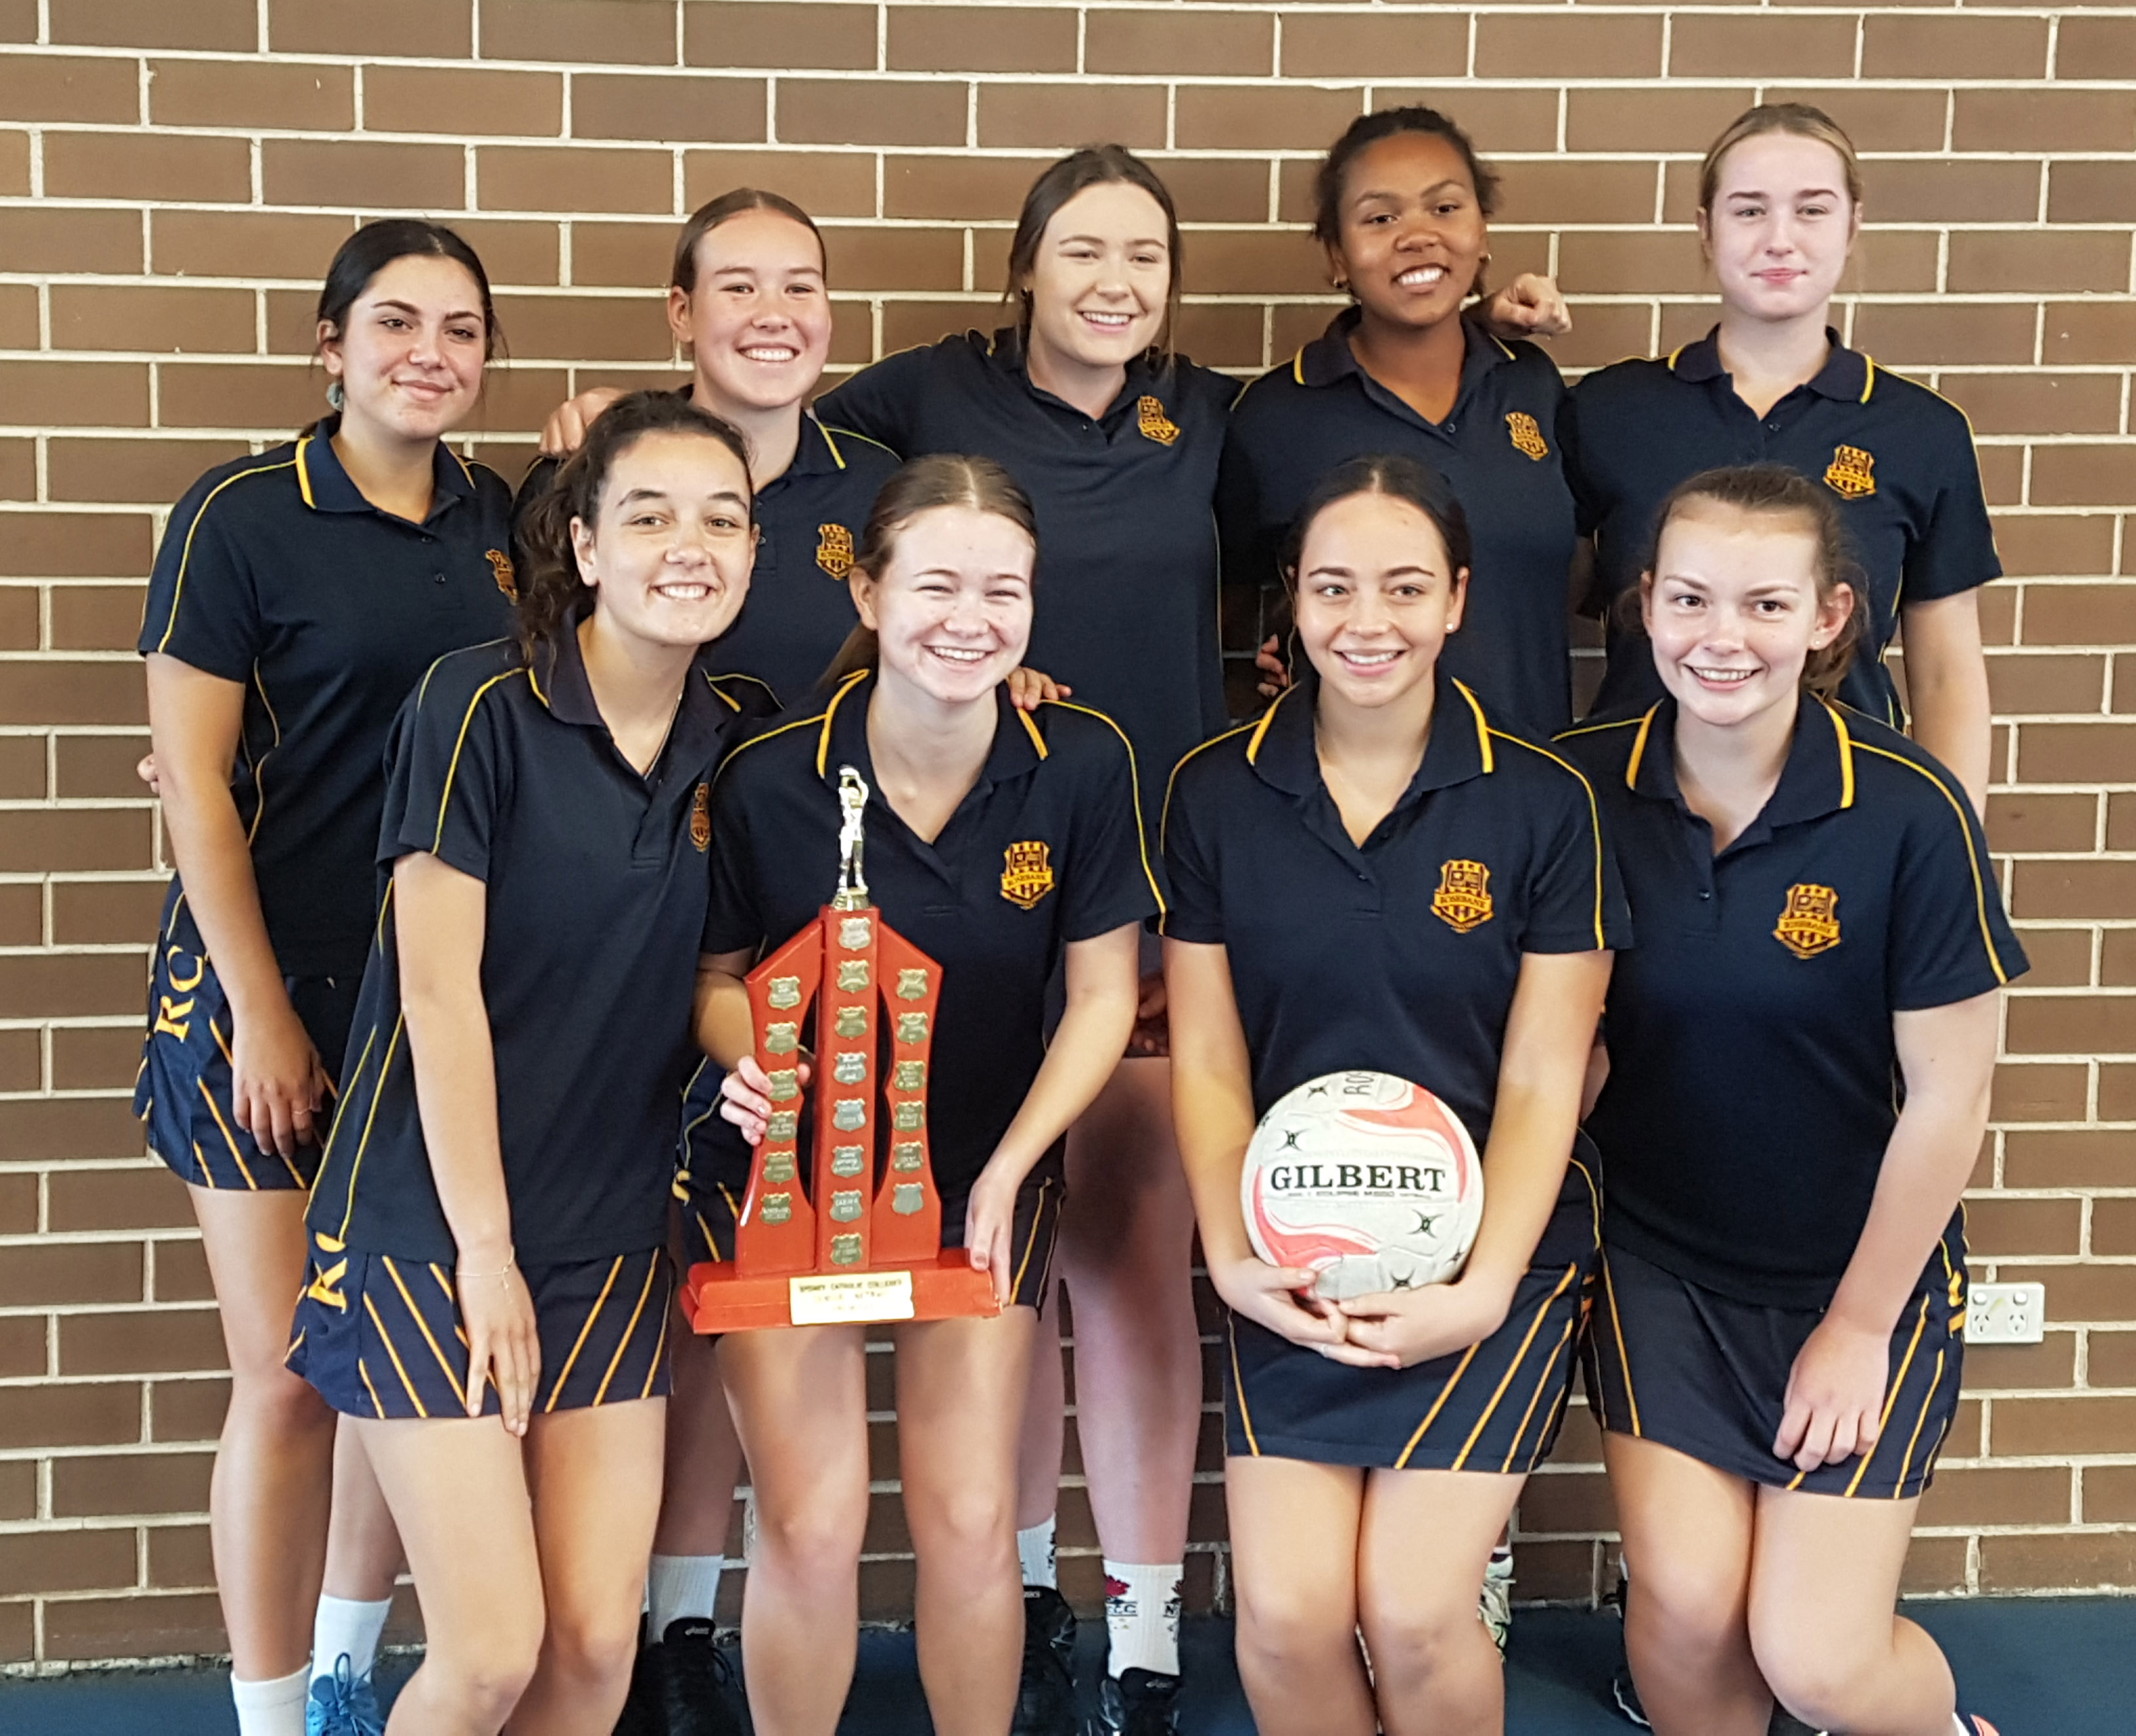 Congratulations to our Netball Champions